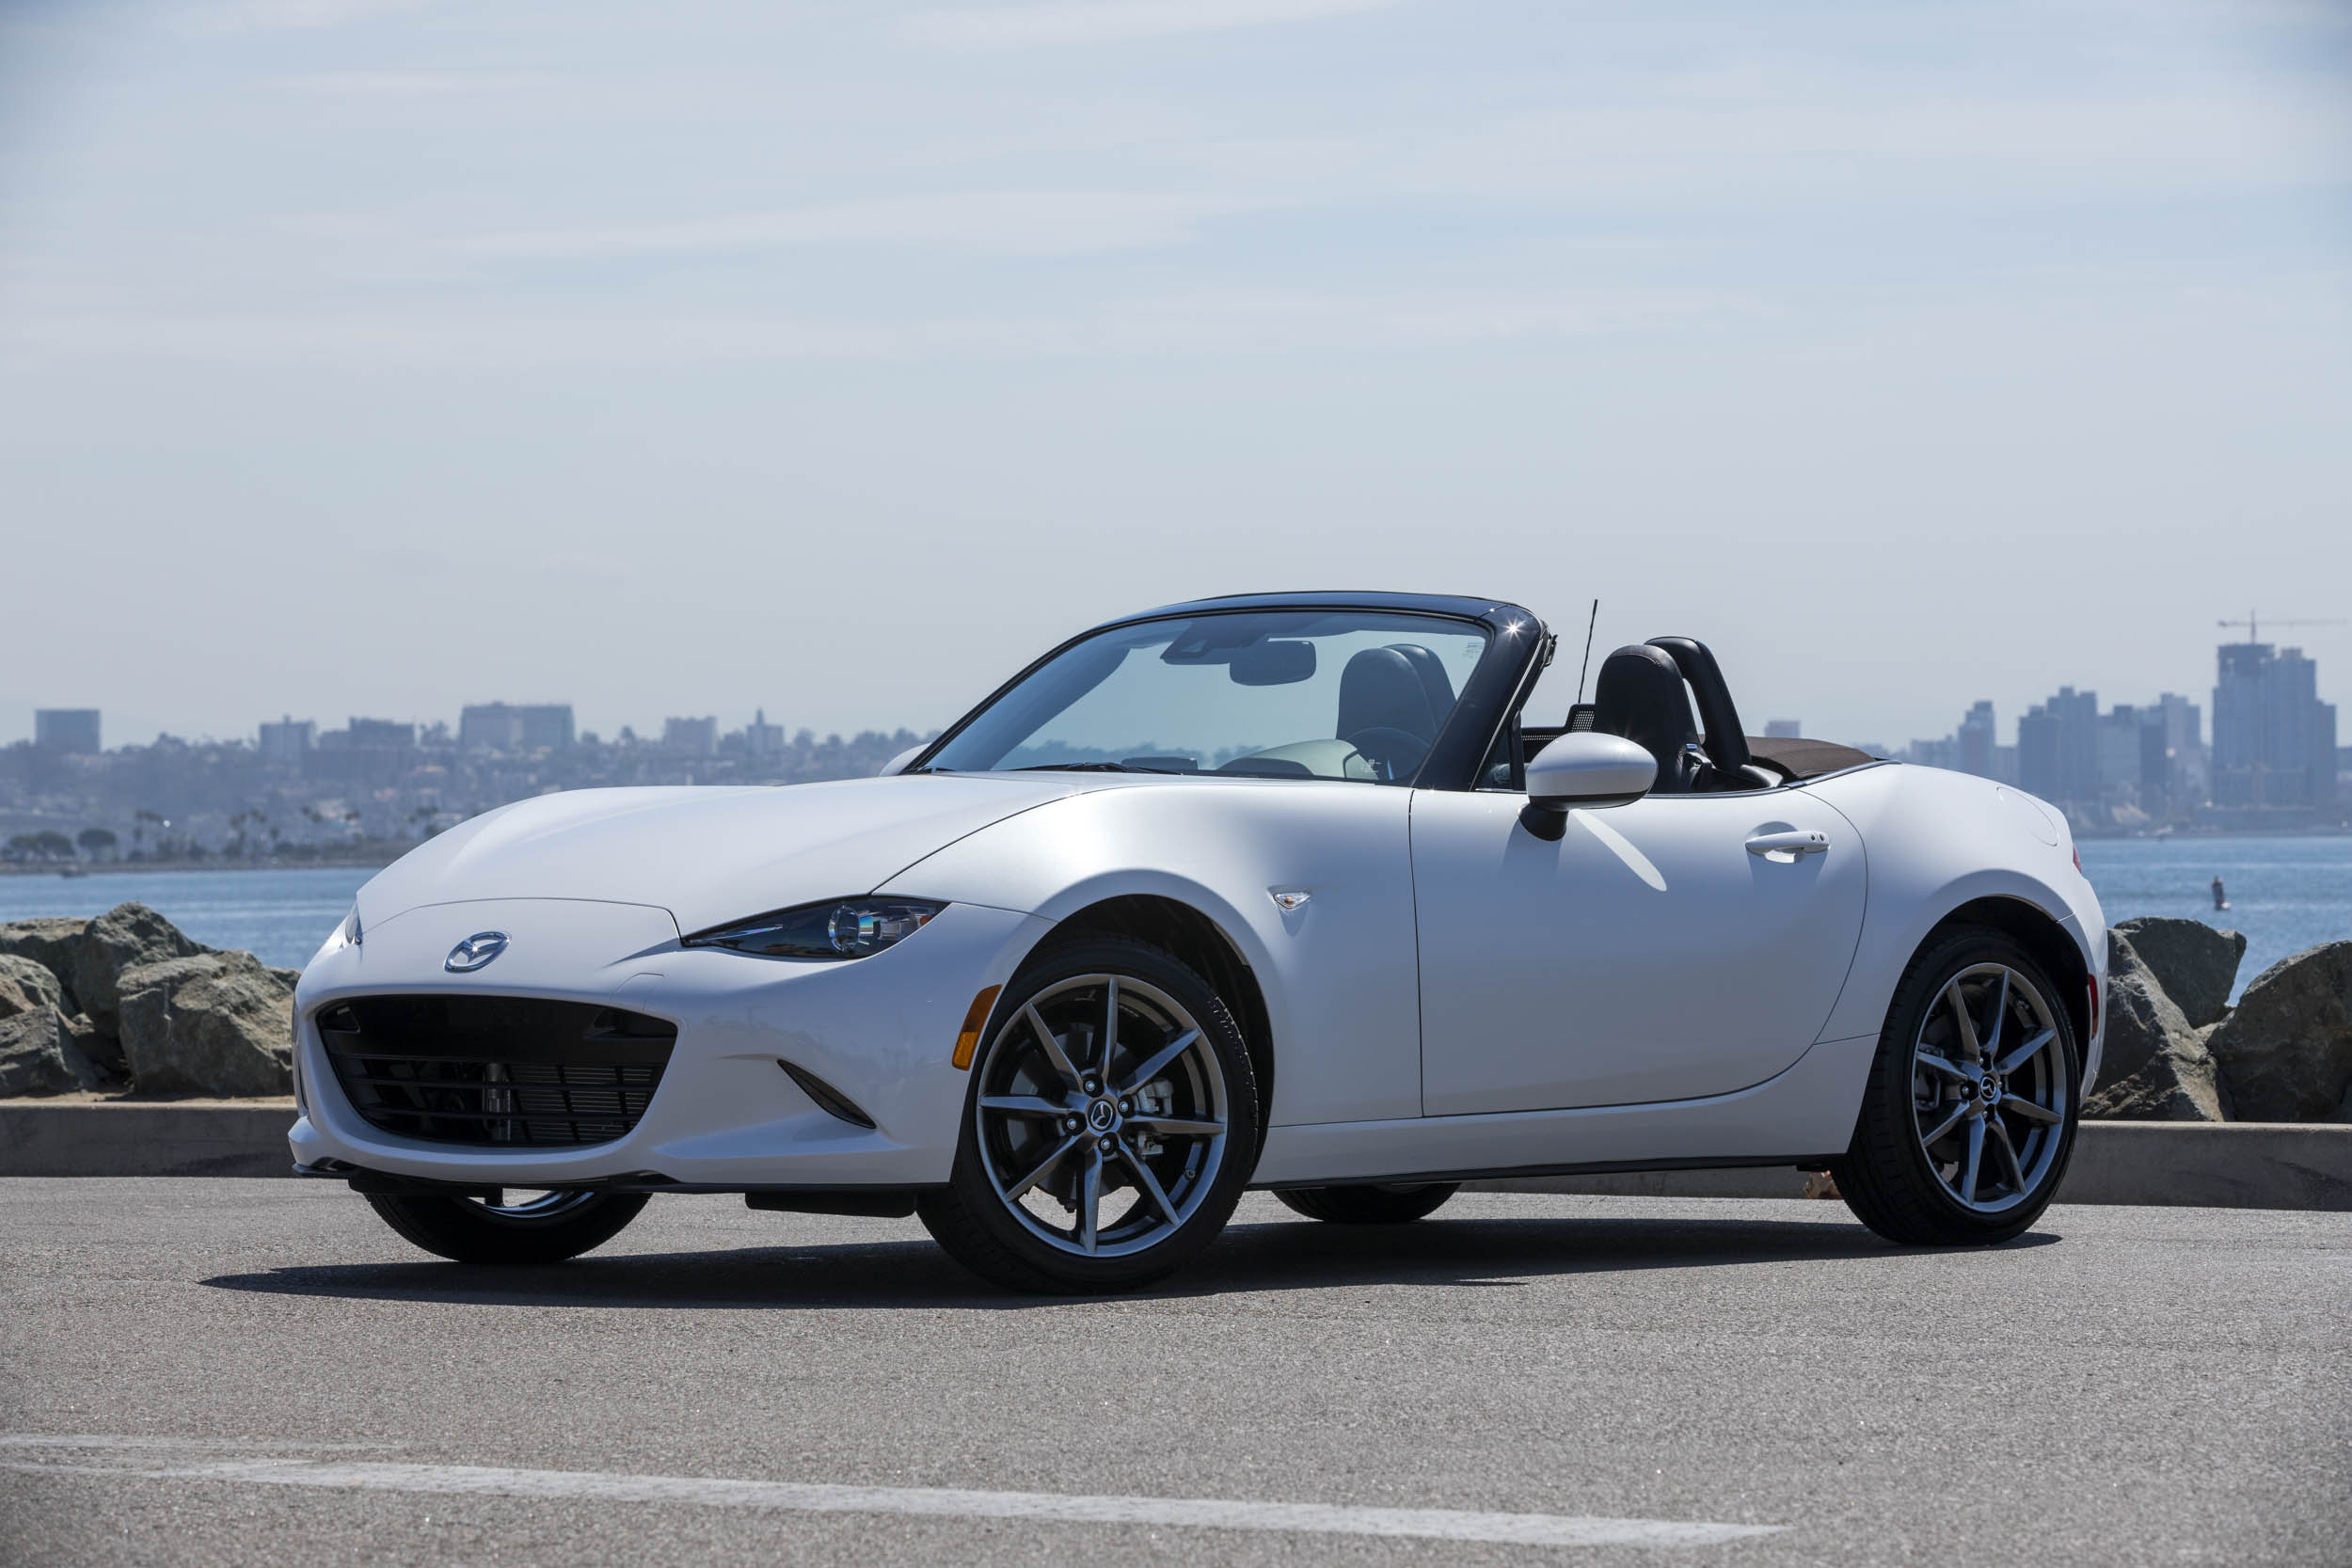 2019 Mazda MX-5 Miata Roadster top down